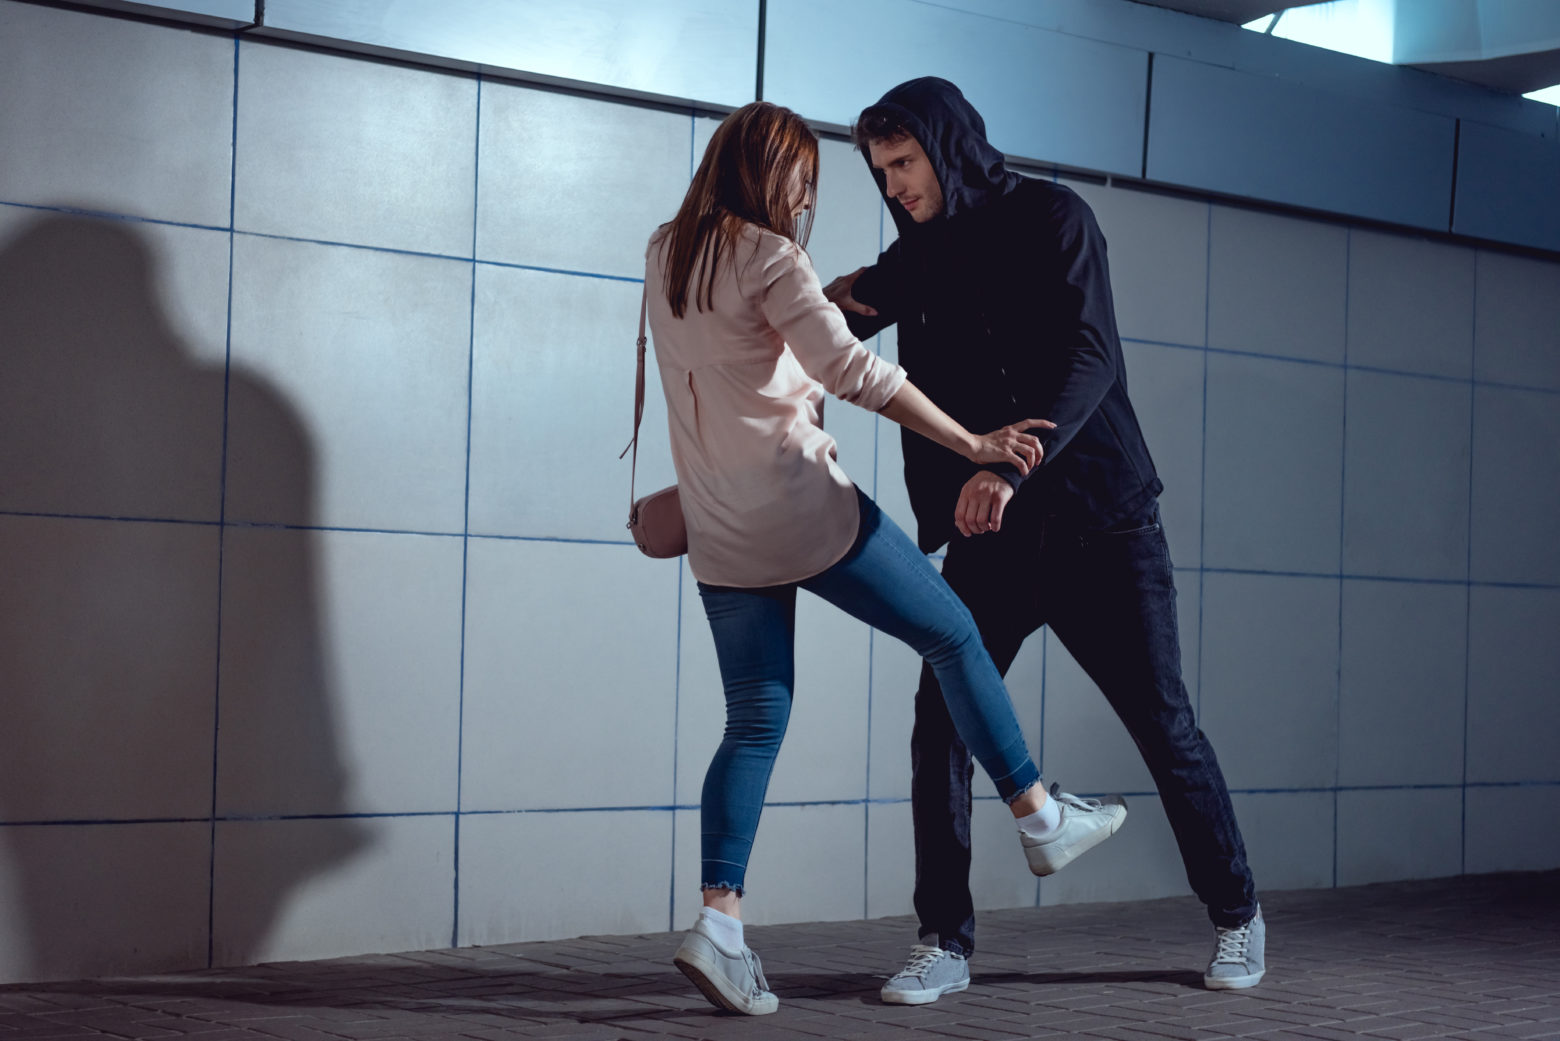 Best Martial Art for Self Defense - 3 Important Questions to